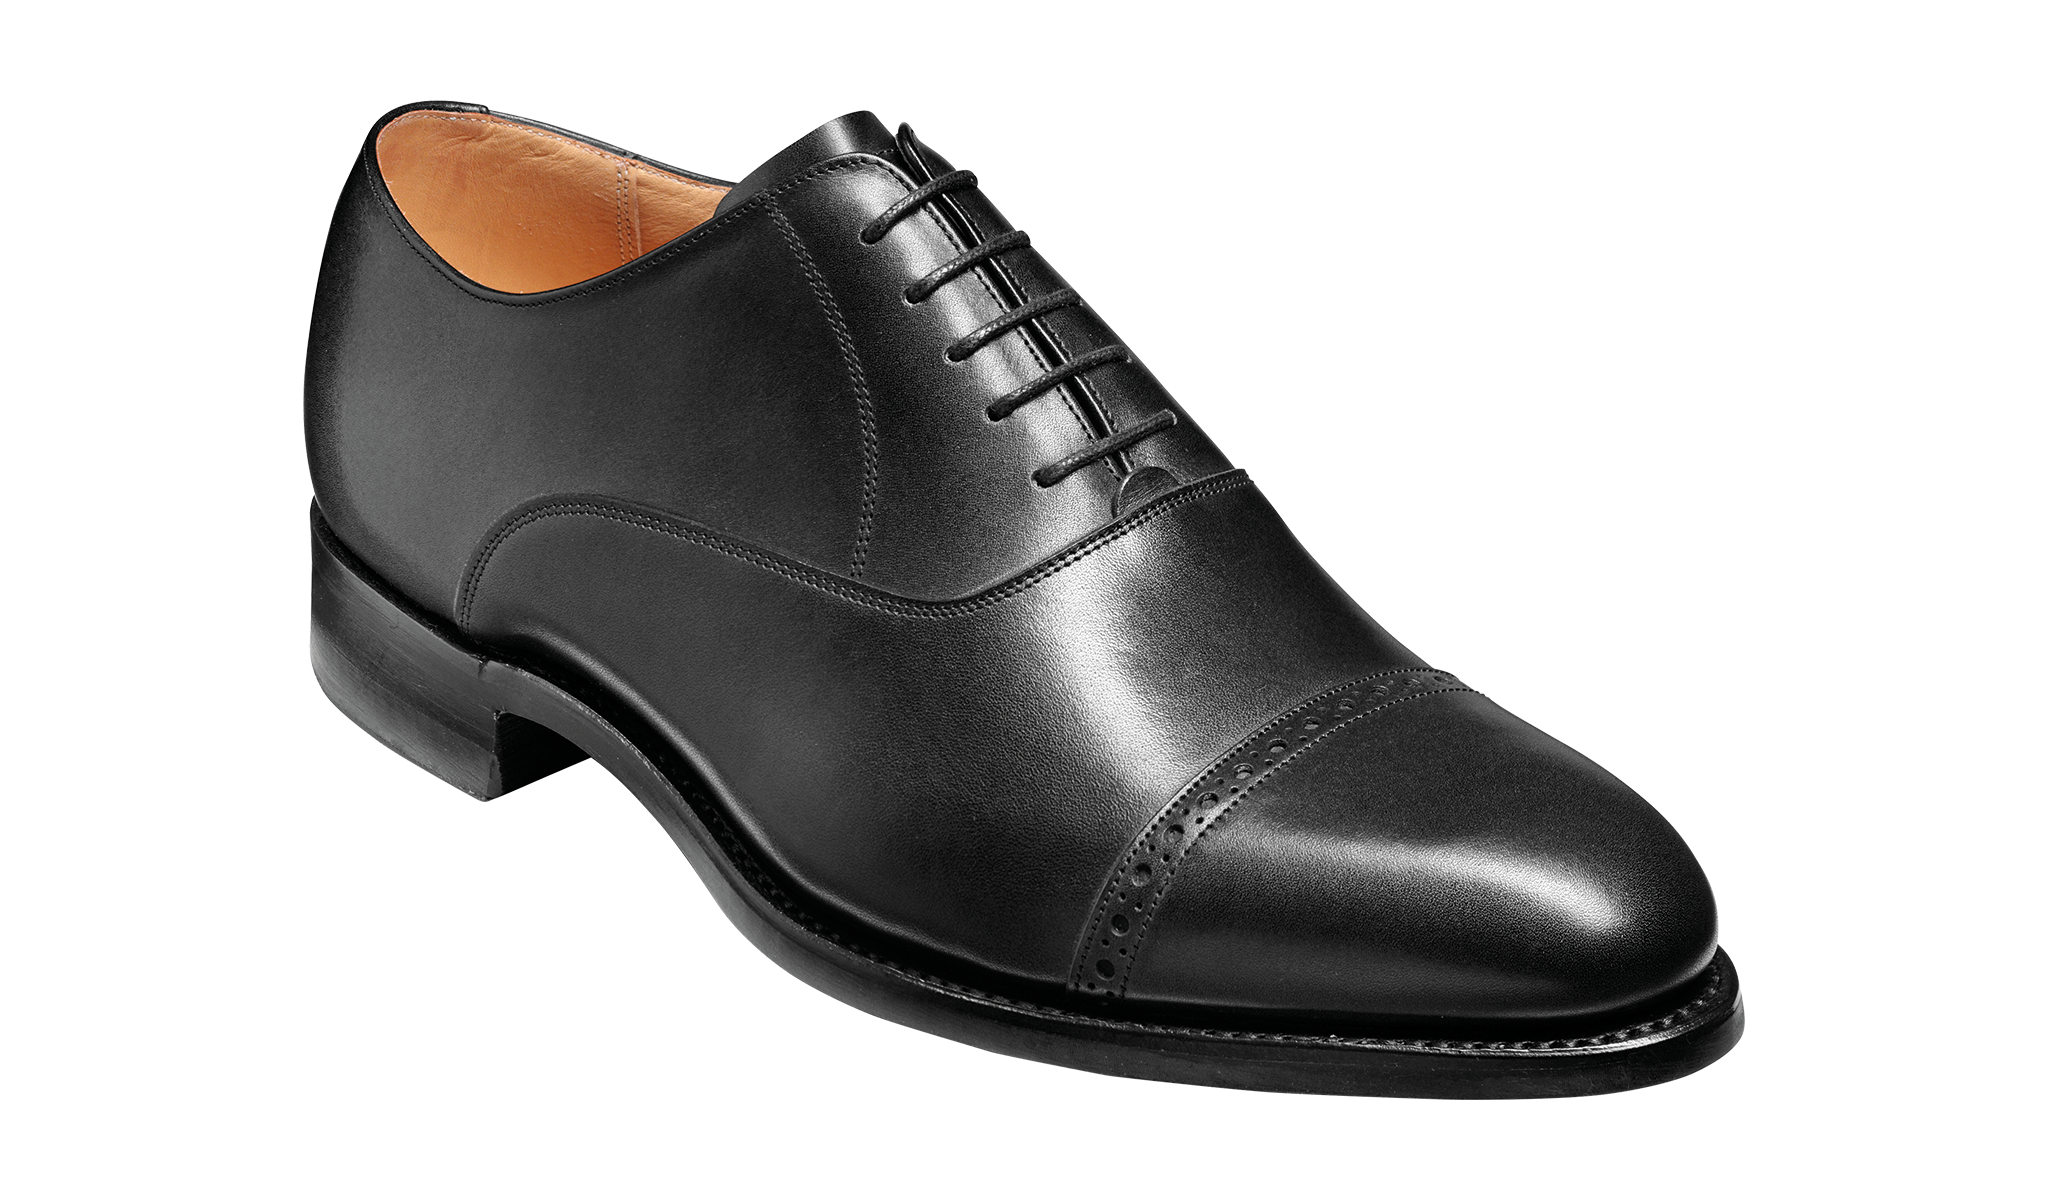 Burford - Men's Leather Party Shoe By Barker